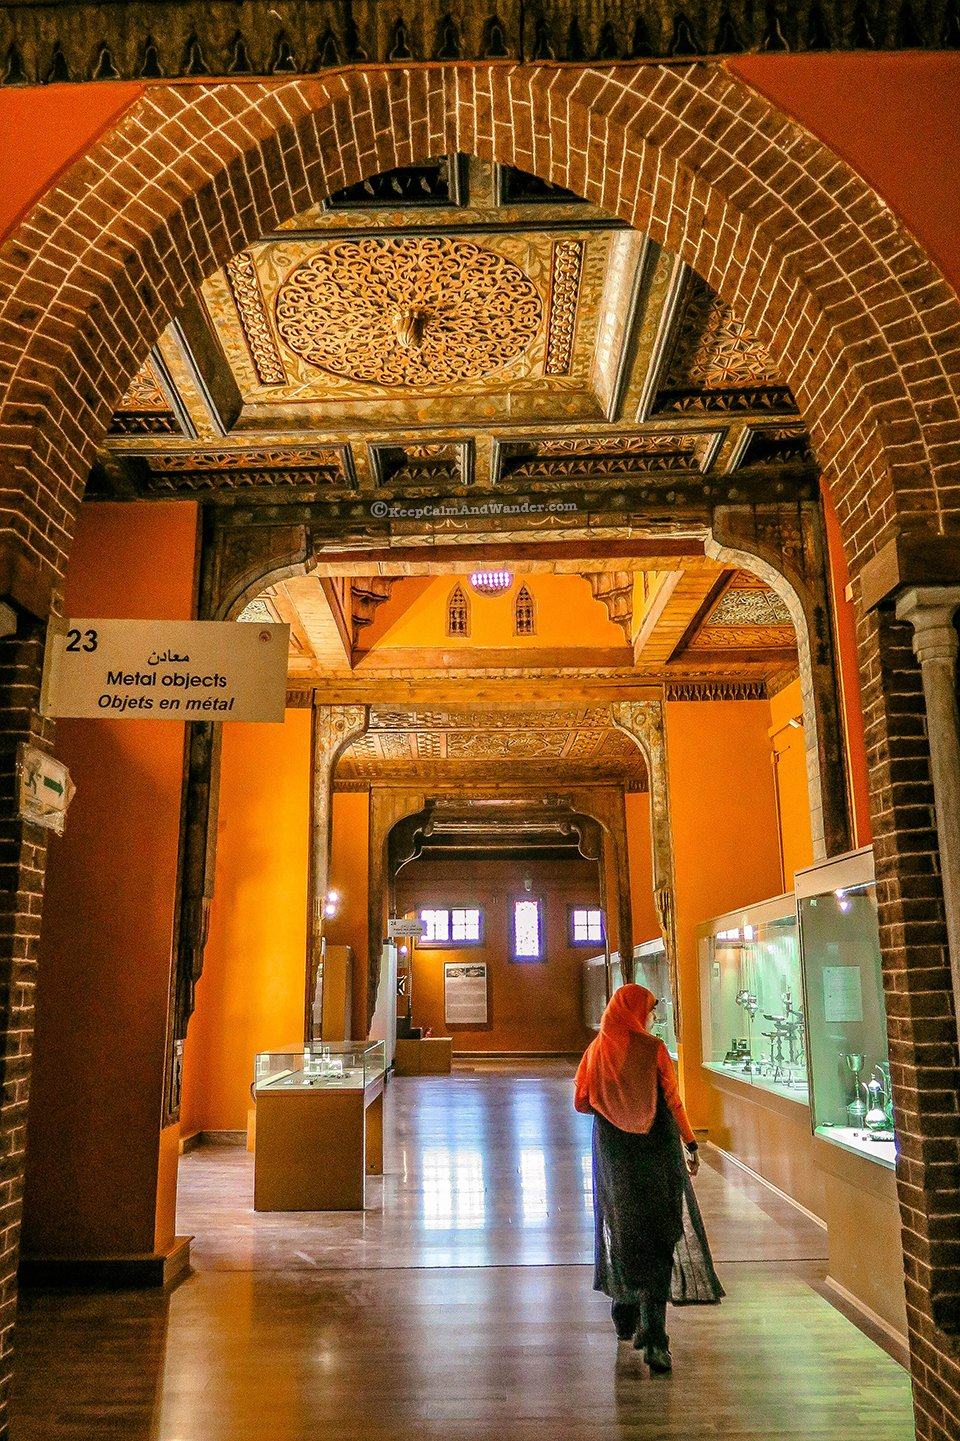 Coptic Museum in Cairo has the World's Largest Collection of Coptic Artifacts (Cairo, Egypt).